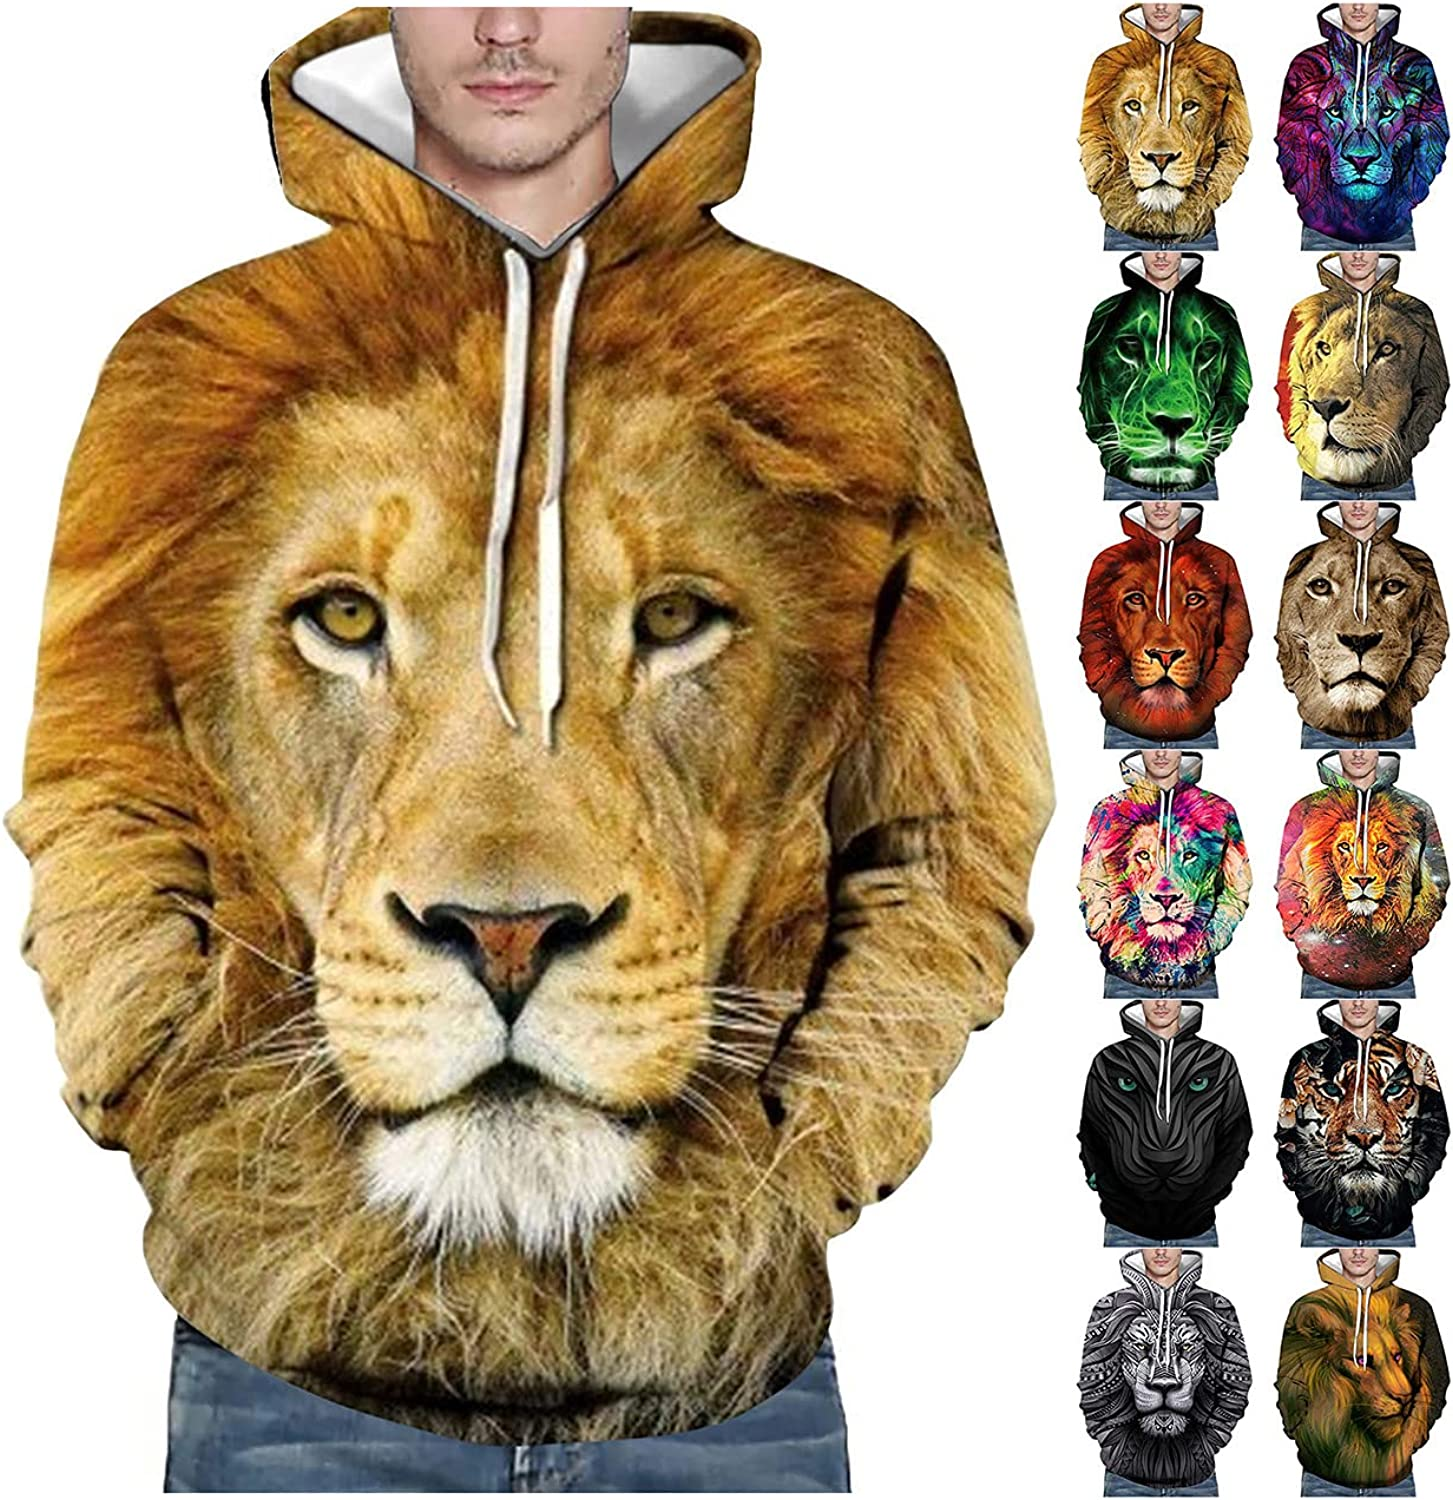 Hoodies for Men Tie Dye Hoodie 3D 2021 new Paint Special price for a limited time H Hip Printed Sweatshirt